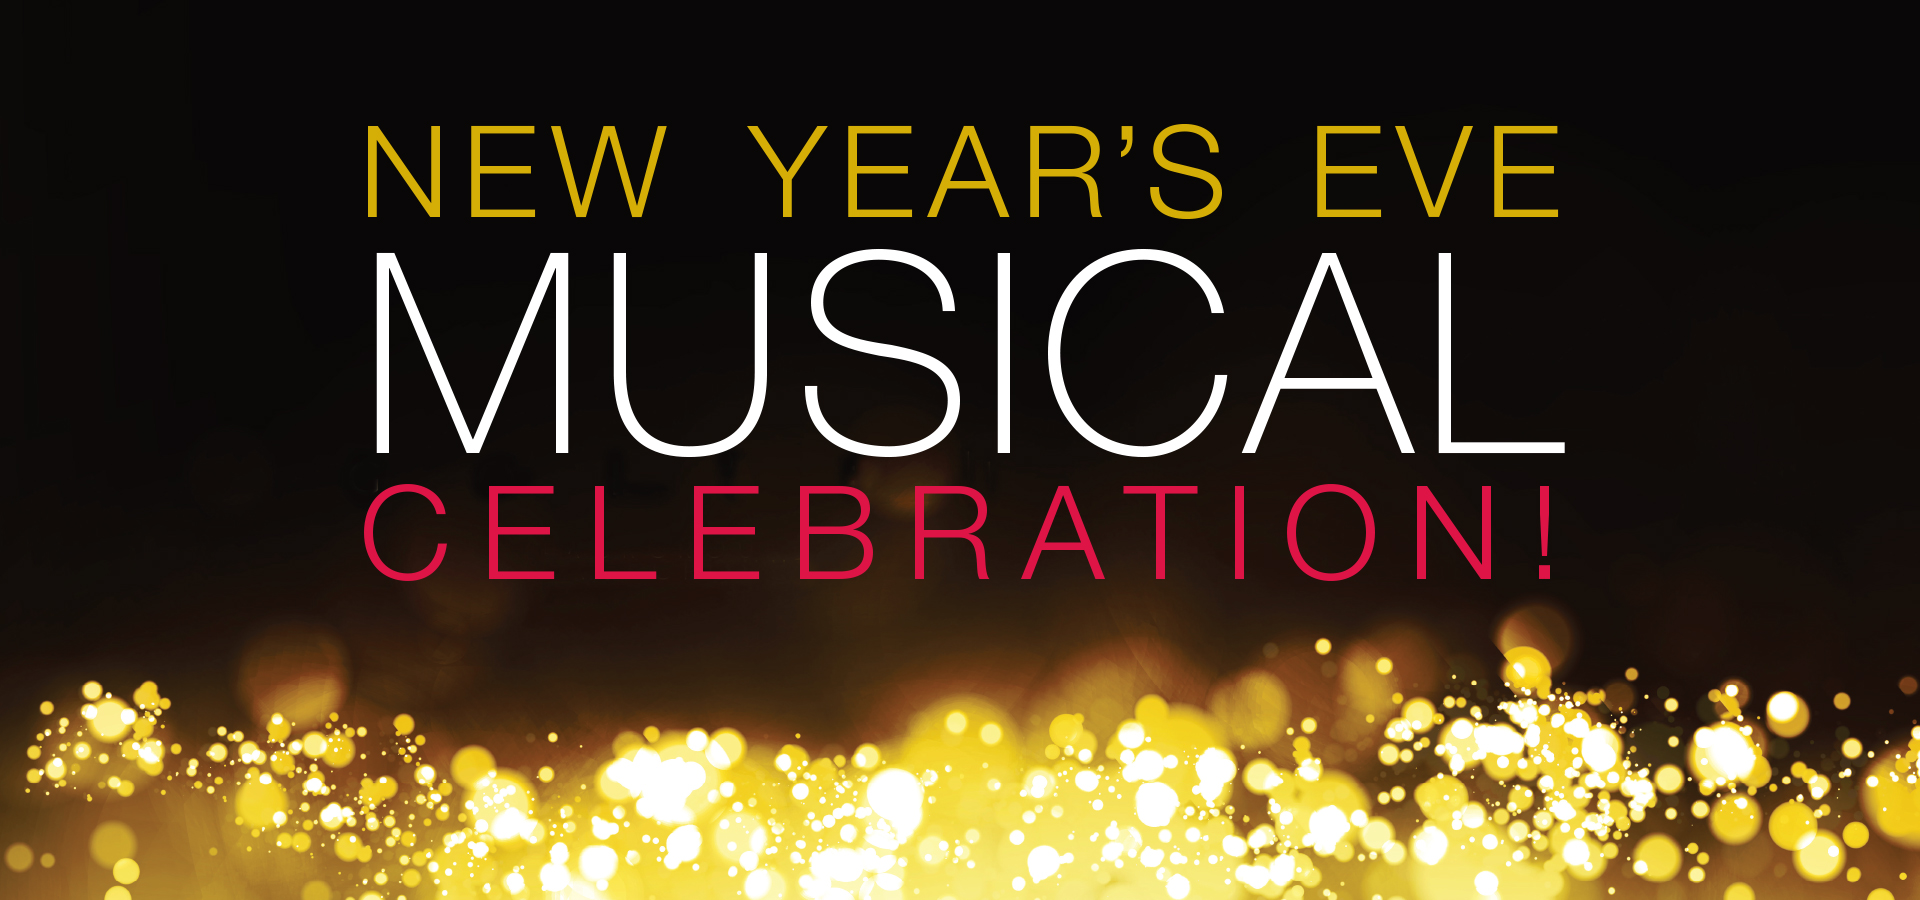 New Year's Eve Musical Celebration